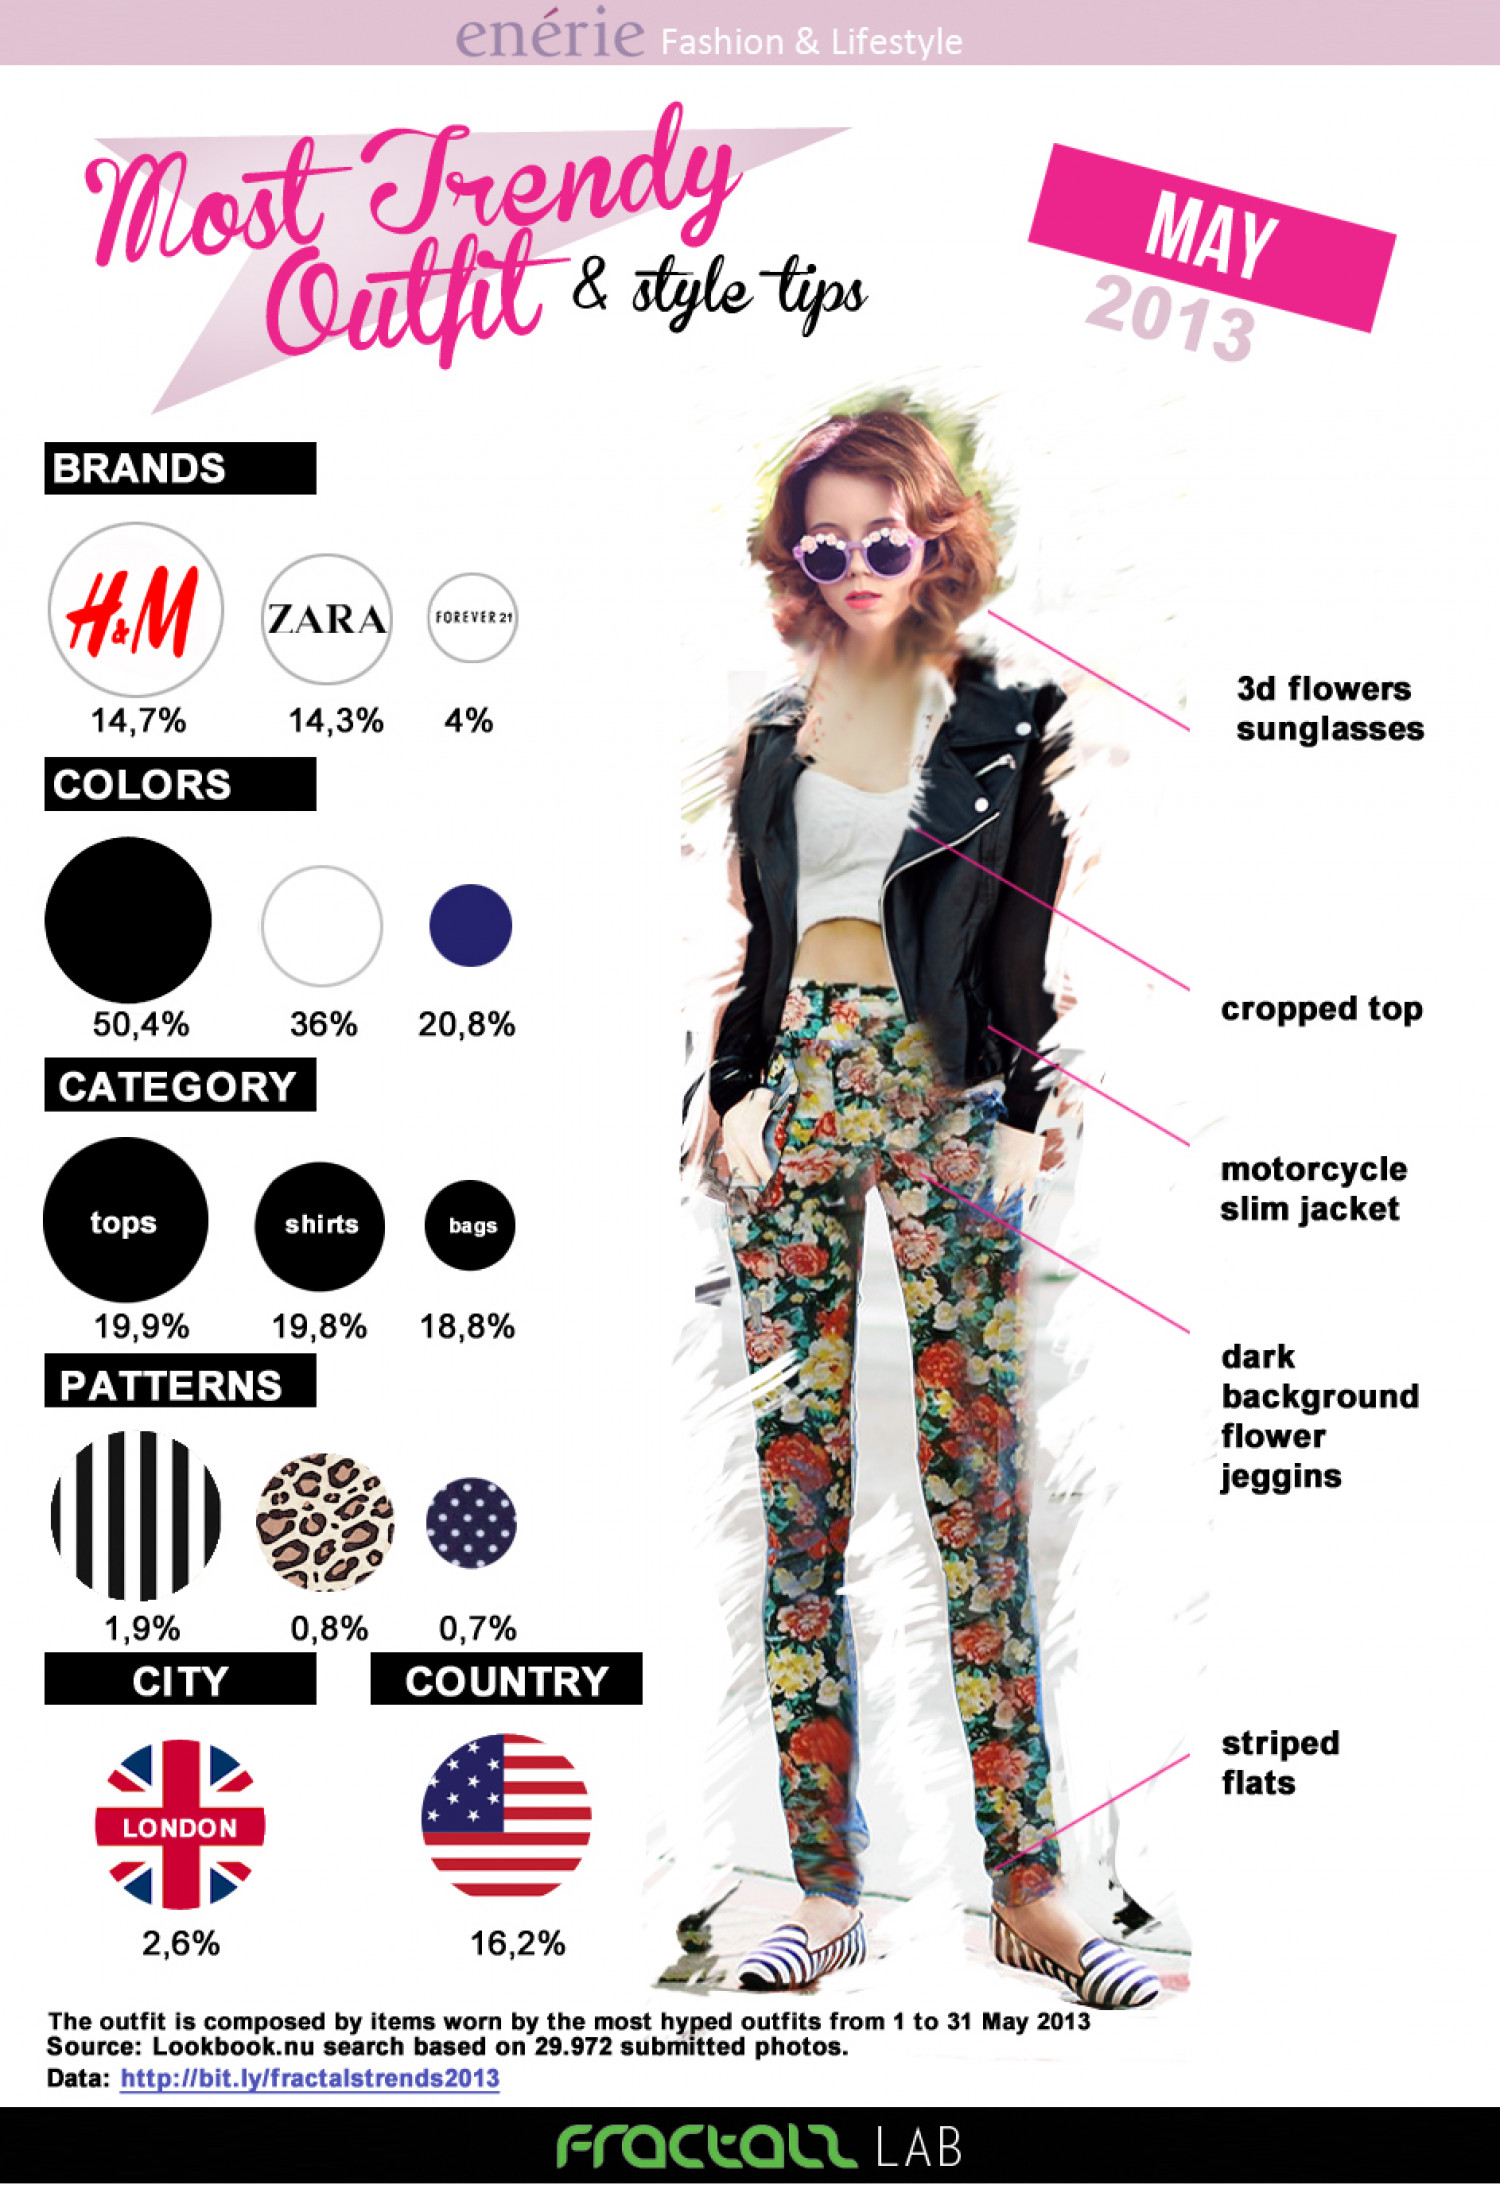 Most Trendy Outfit May 2013 Infographic